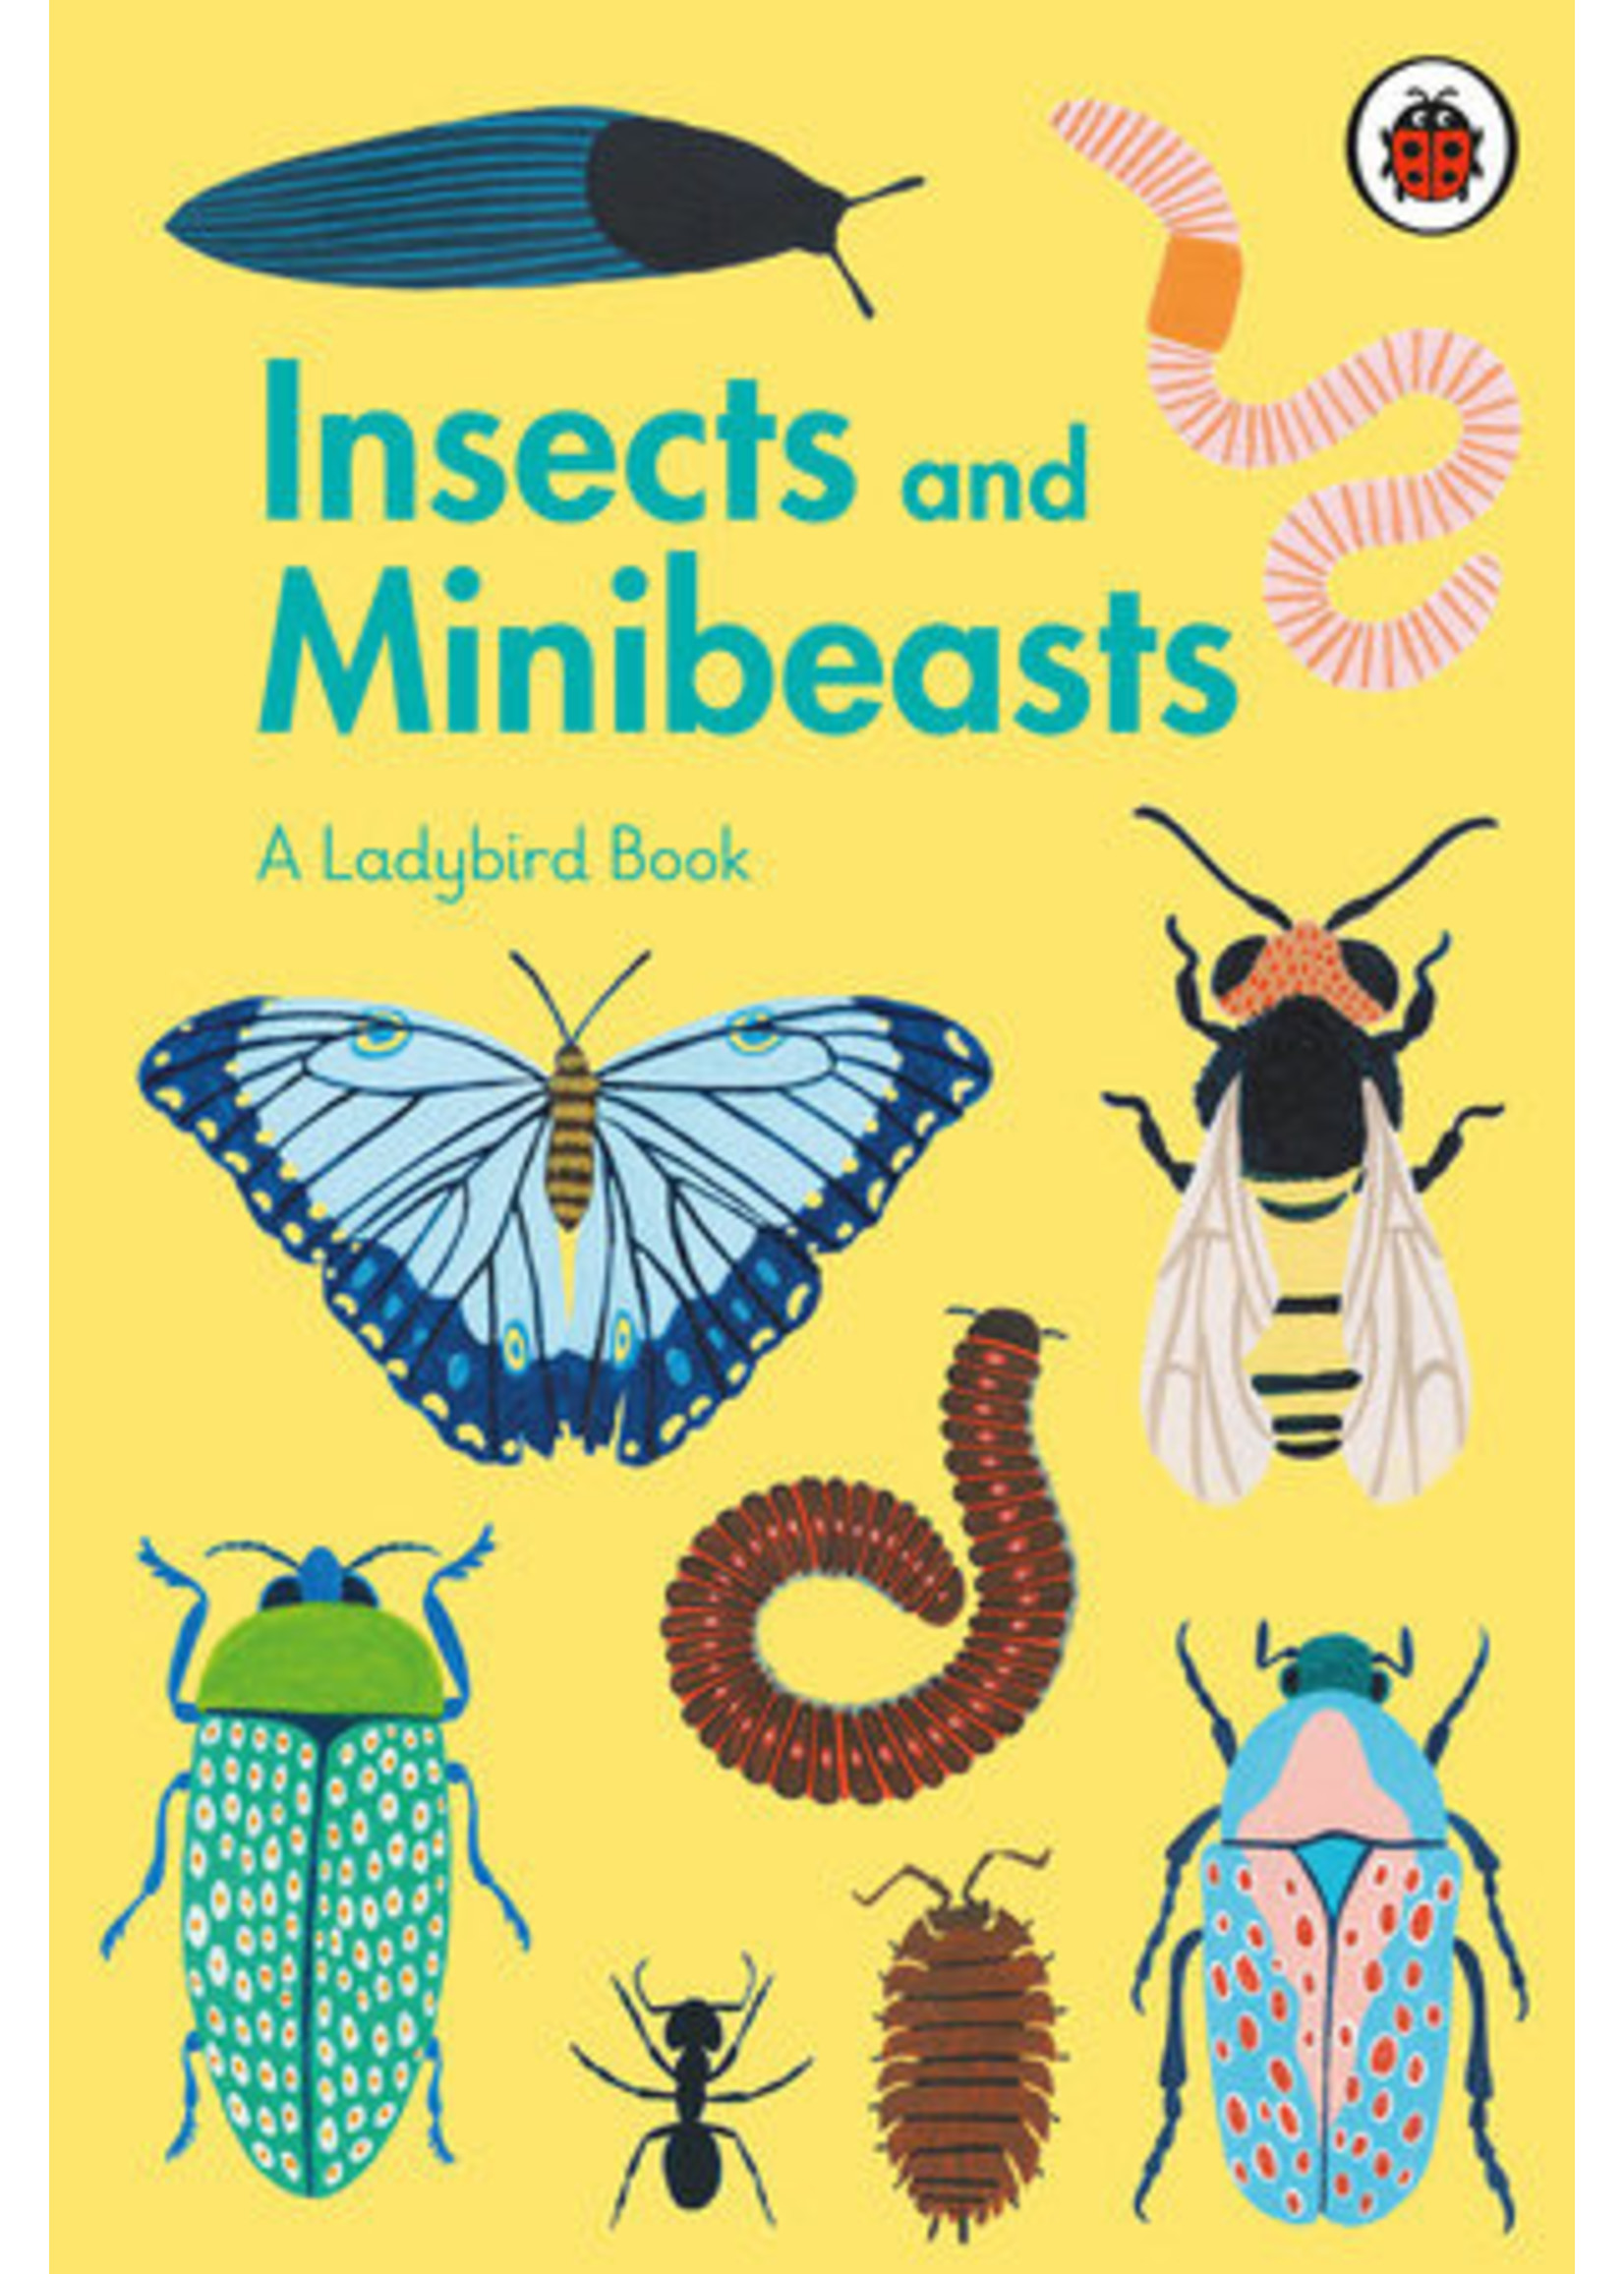 Ladybird A Ladybird Book: Insects and Minibeasts